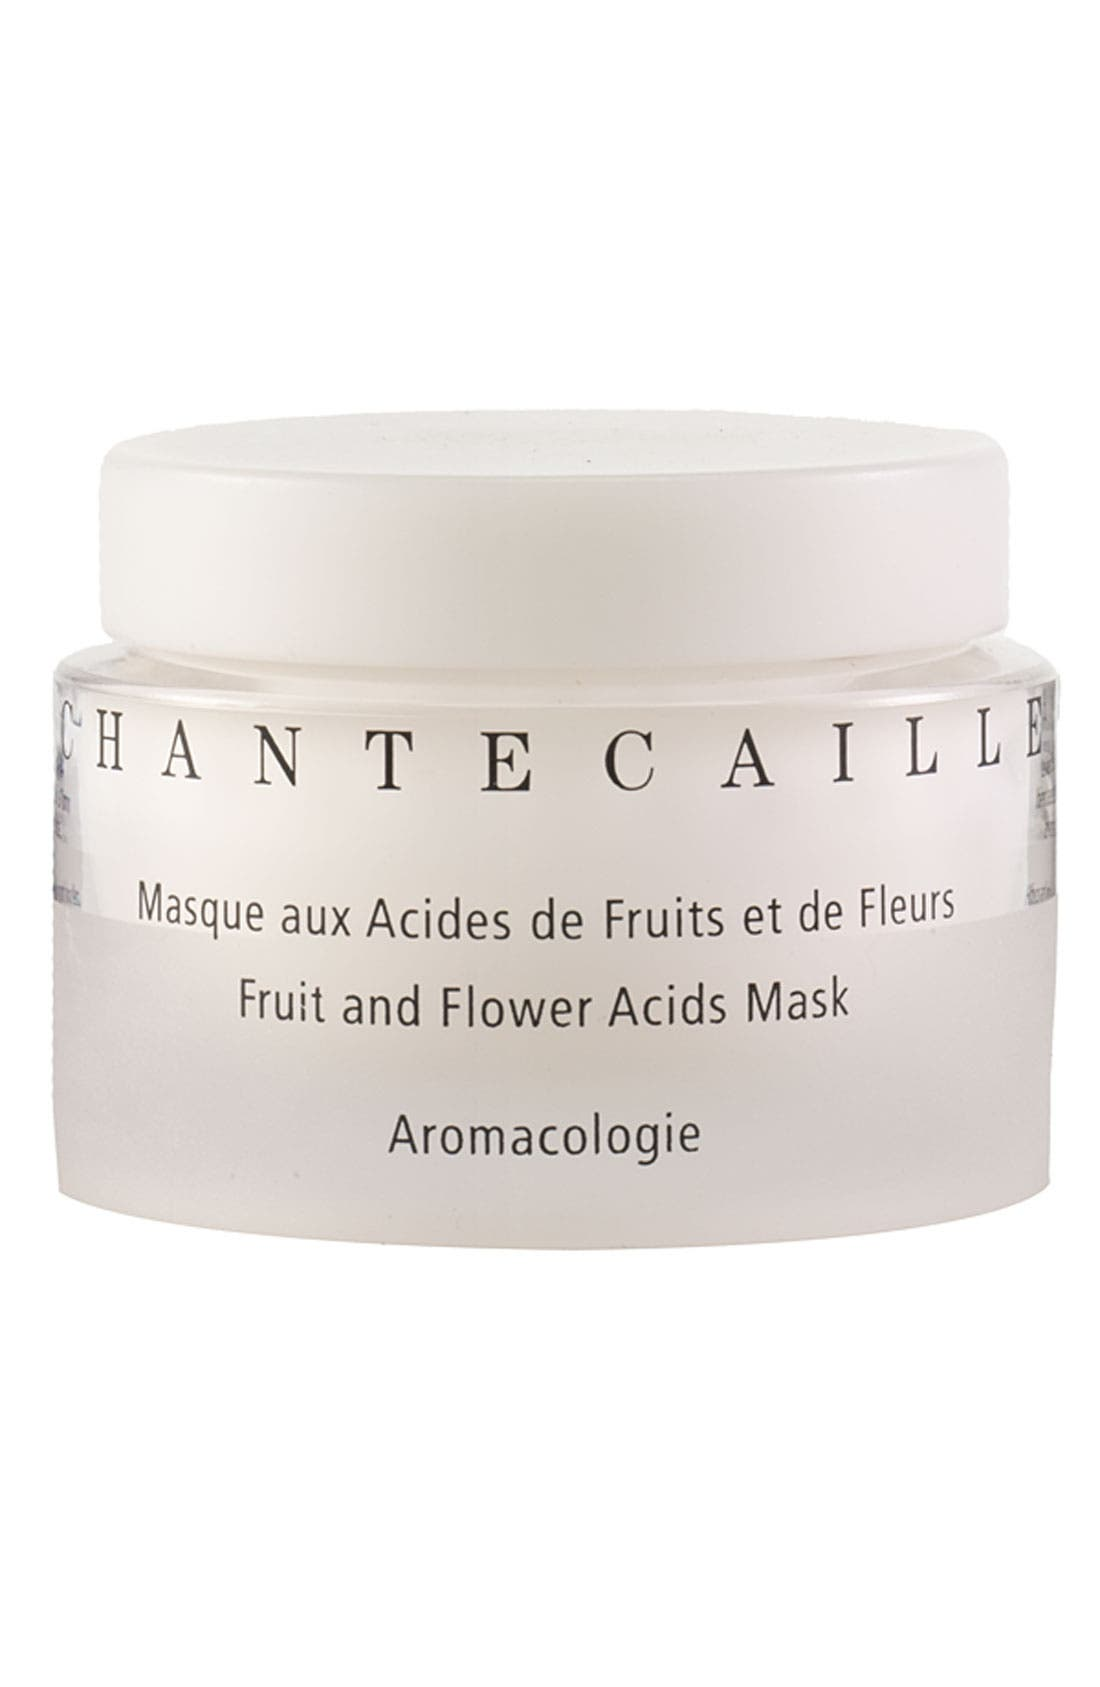 CHANTECAILLE Fruit and Flower Acids Mask, Main, color, 000